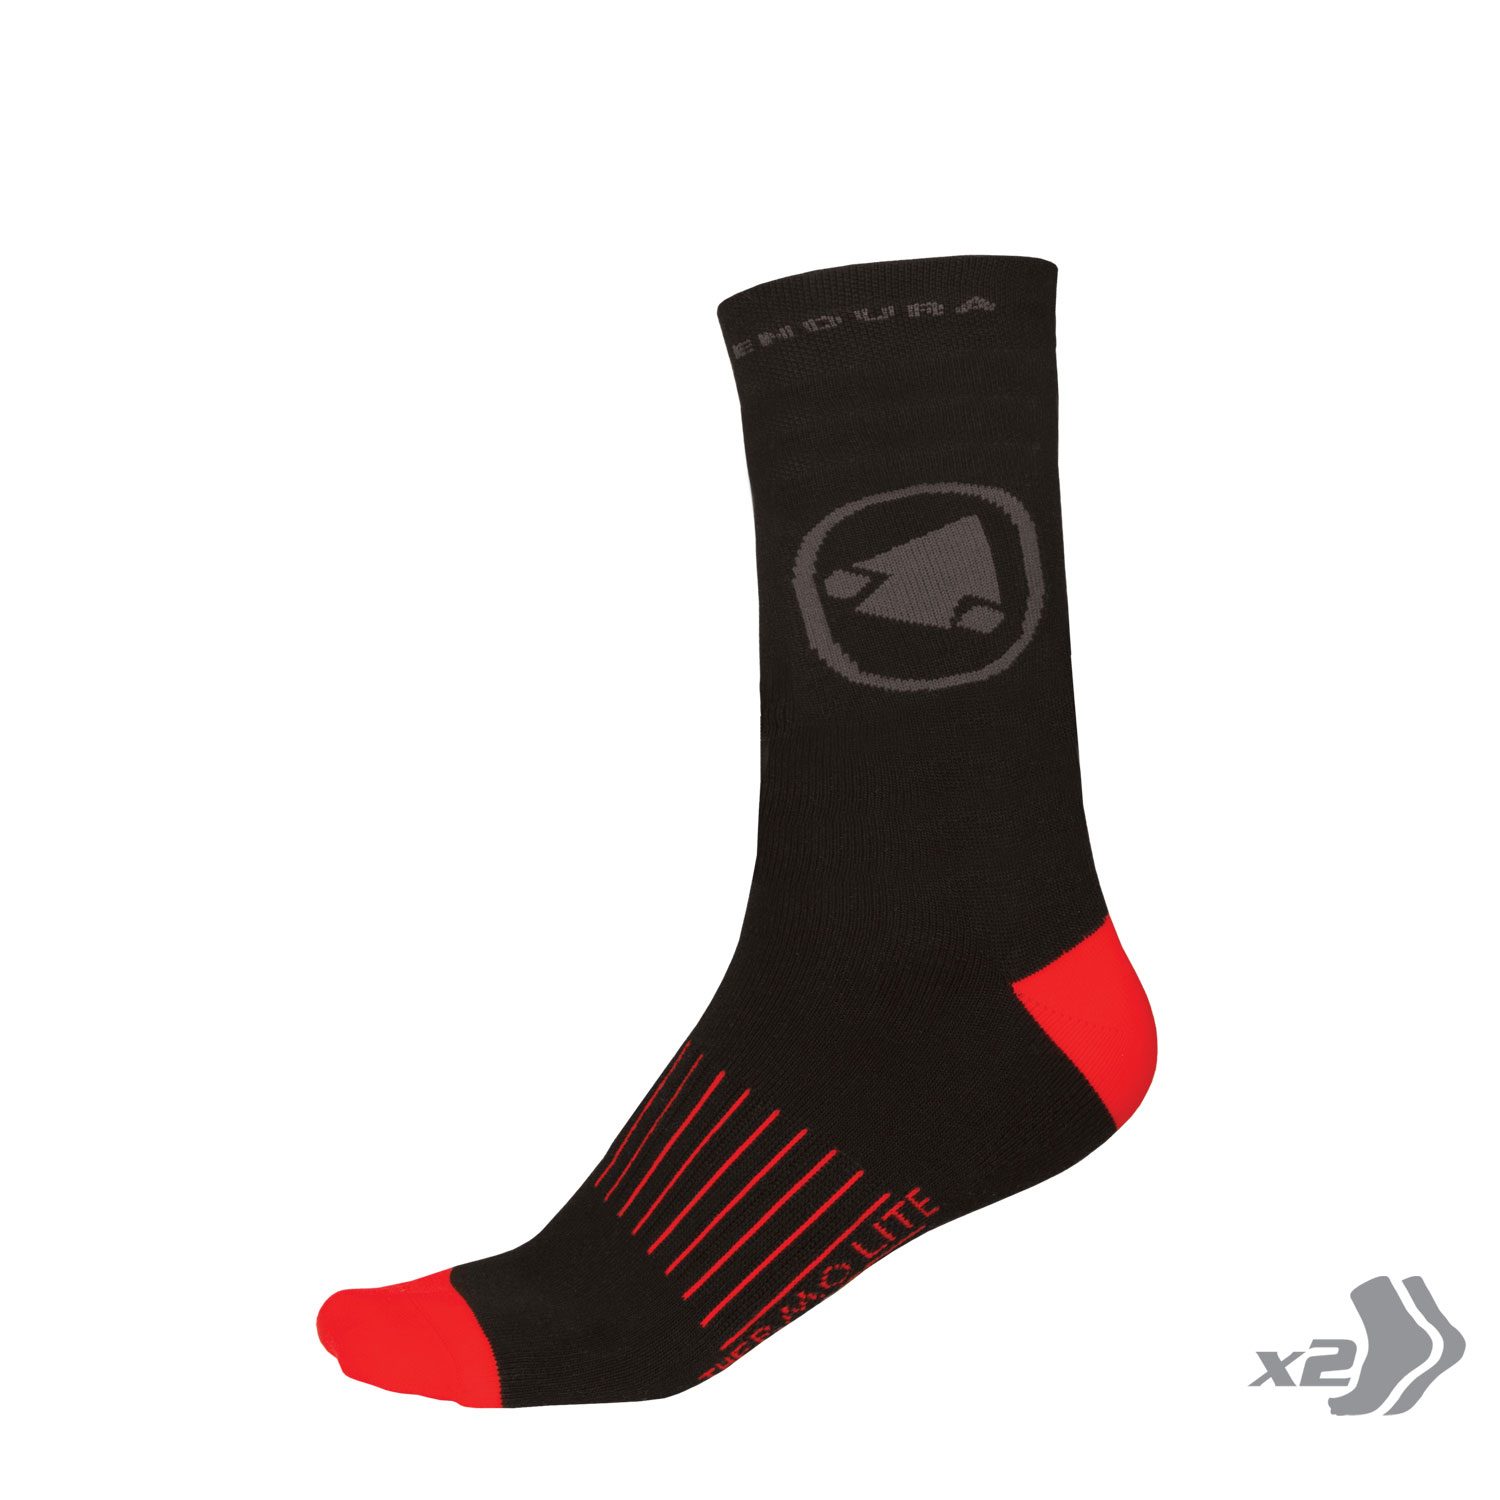 Endura THERMOLITE II (S-M) Thermal Insulation Cycling Socks - Twin pack